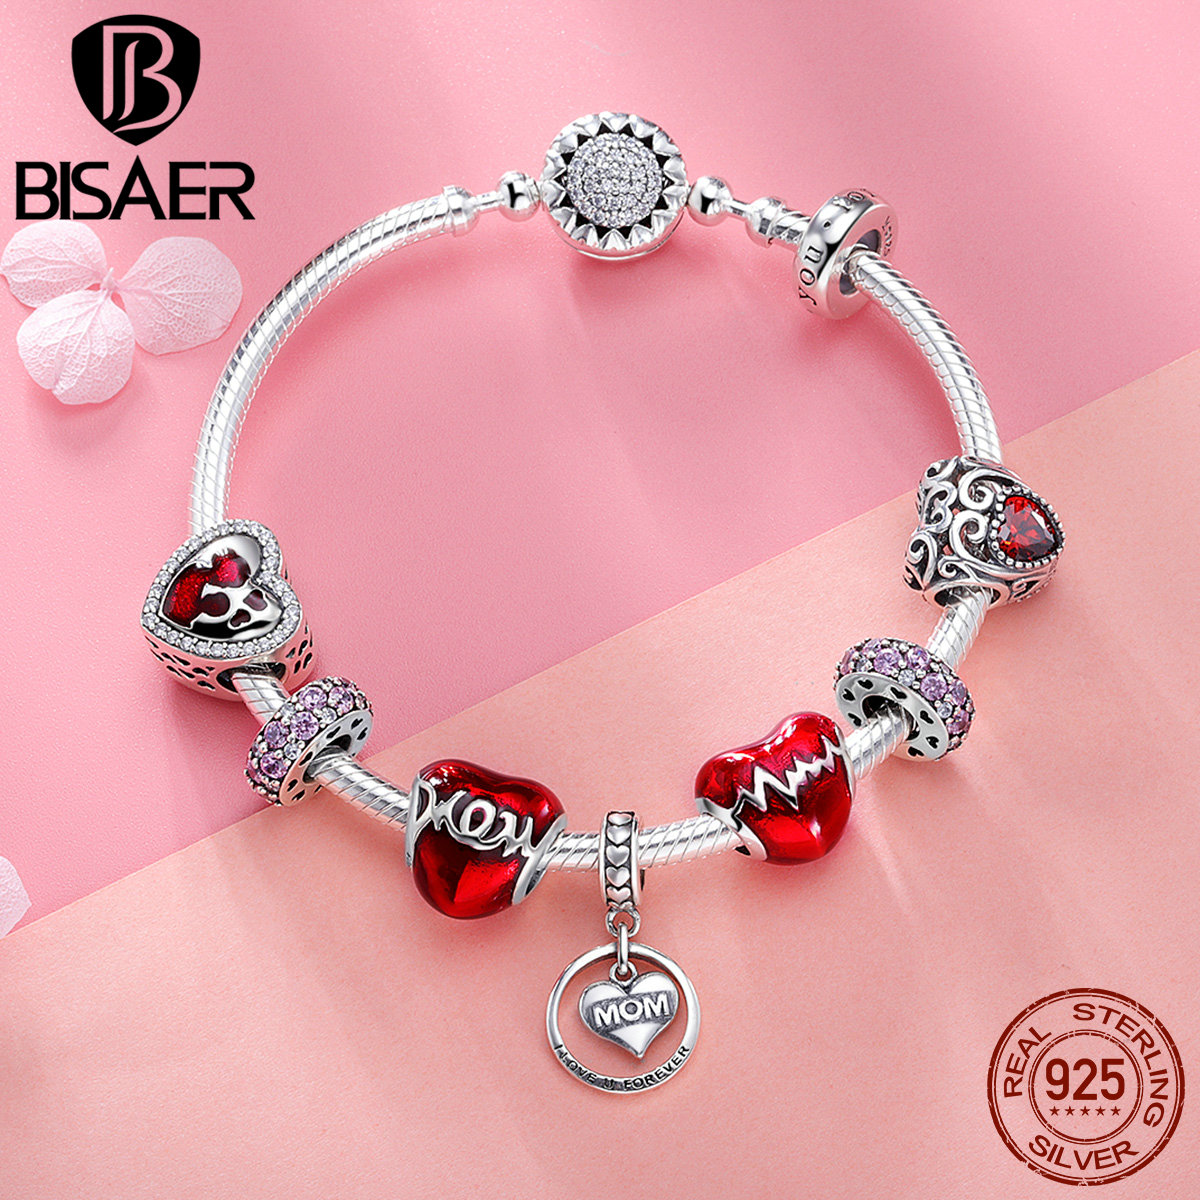 BISAER 9pc Authentic 925 Sterling Silver Mom Letters Red Heart Enamel Charm Bracelet For Women Mother Gift Silver Bangle GXB807 bisaer 7pcs 925 sterling silver heart key and locket heart pendant brand charm bracelet for women wedding silver bangle gxb811